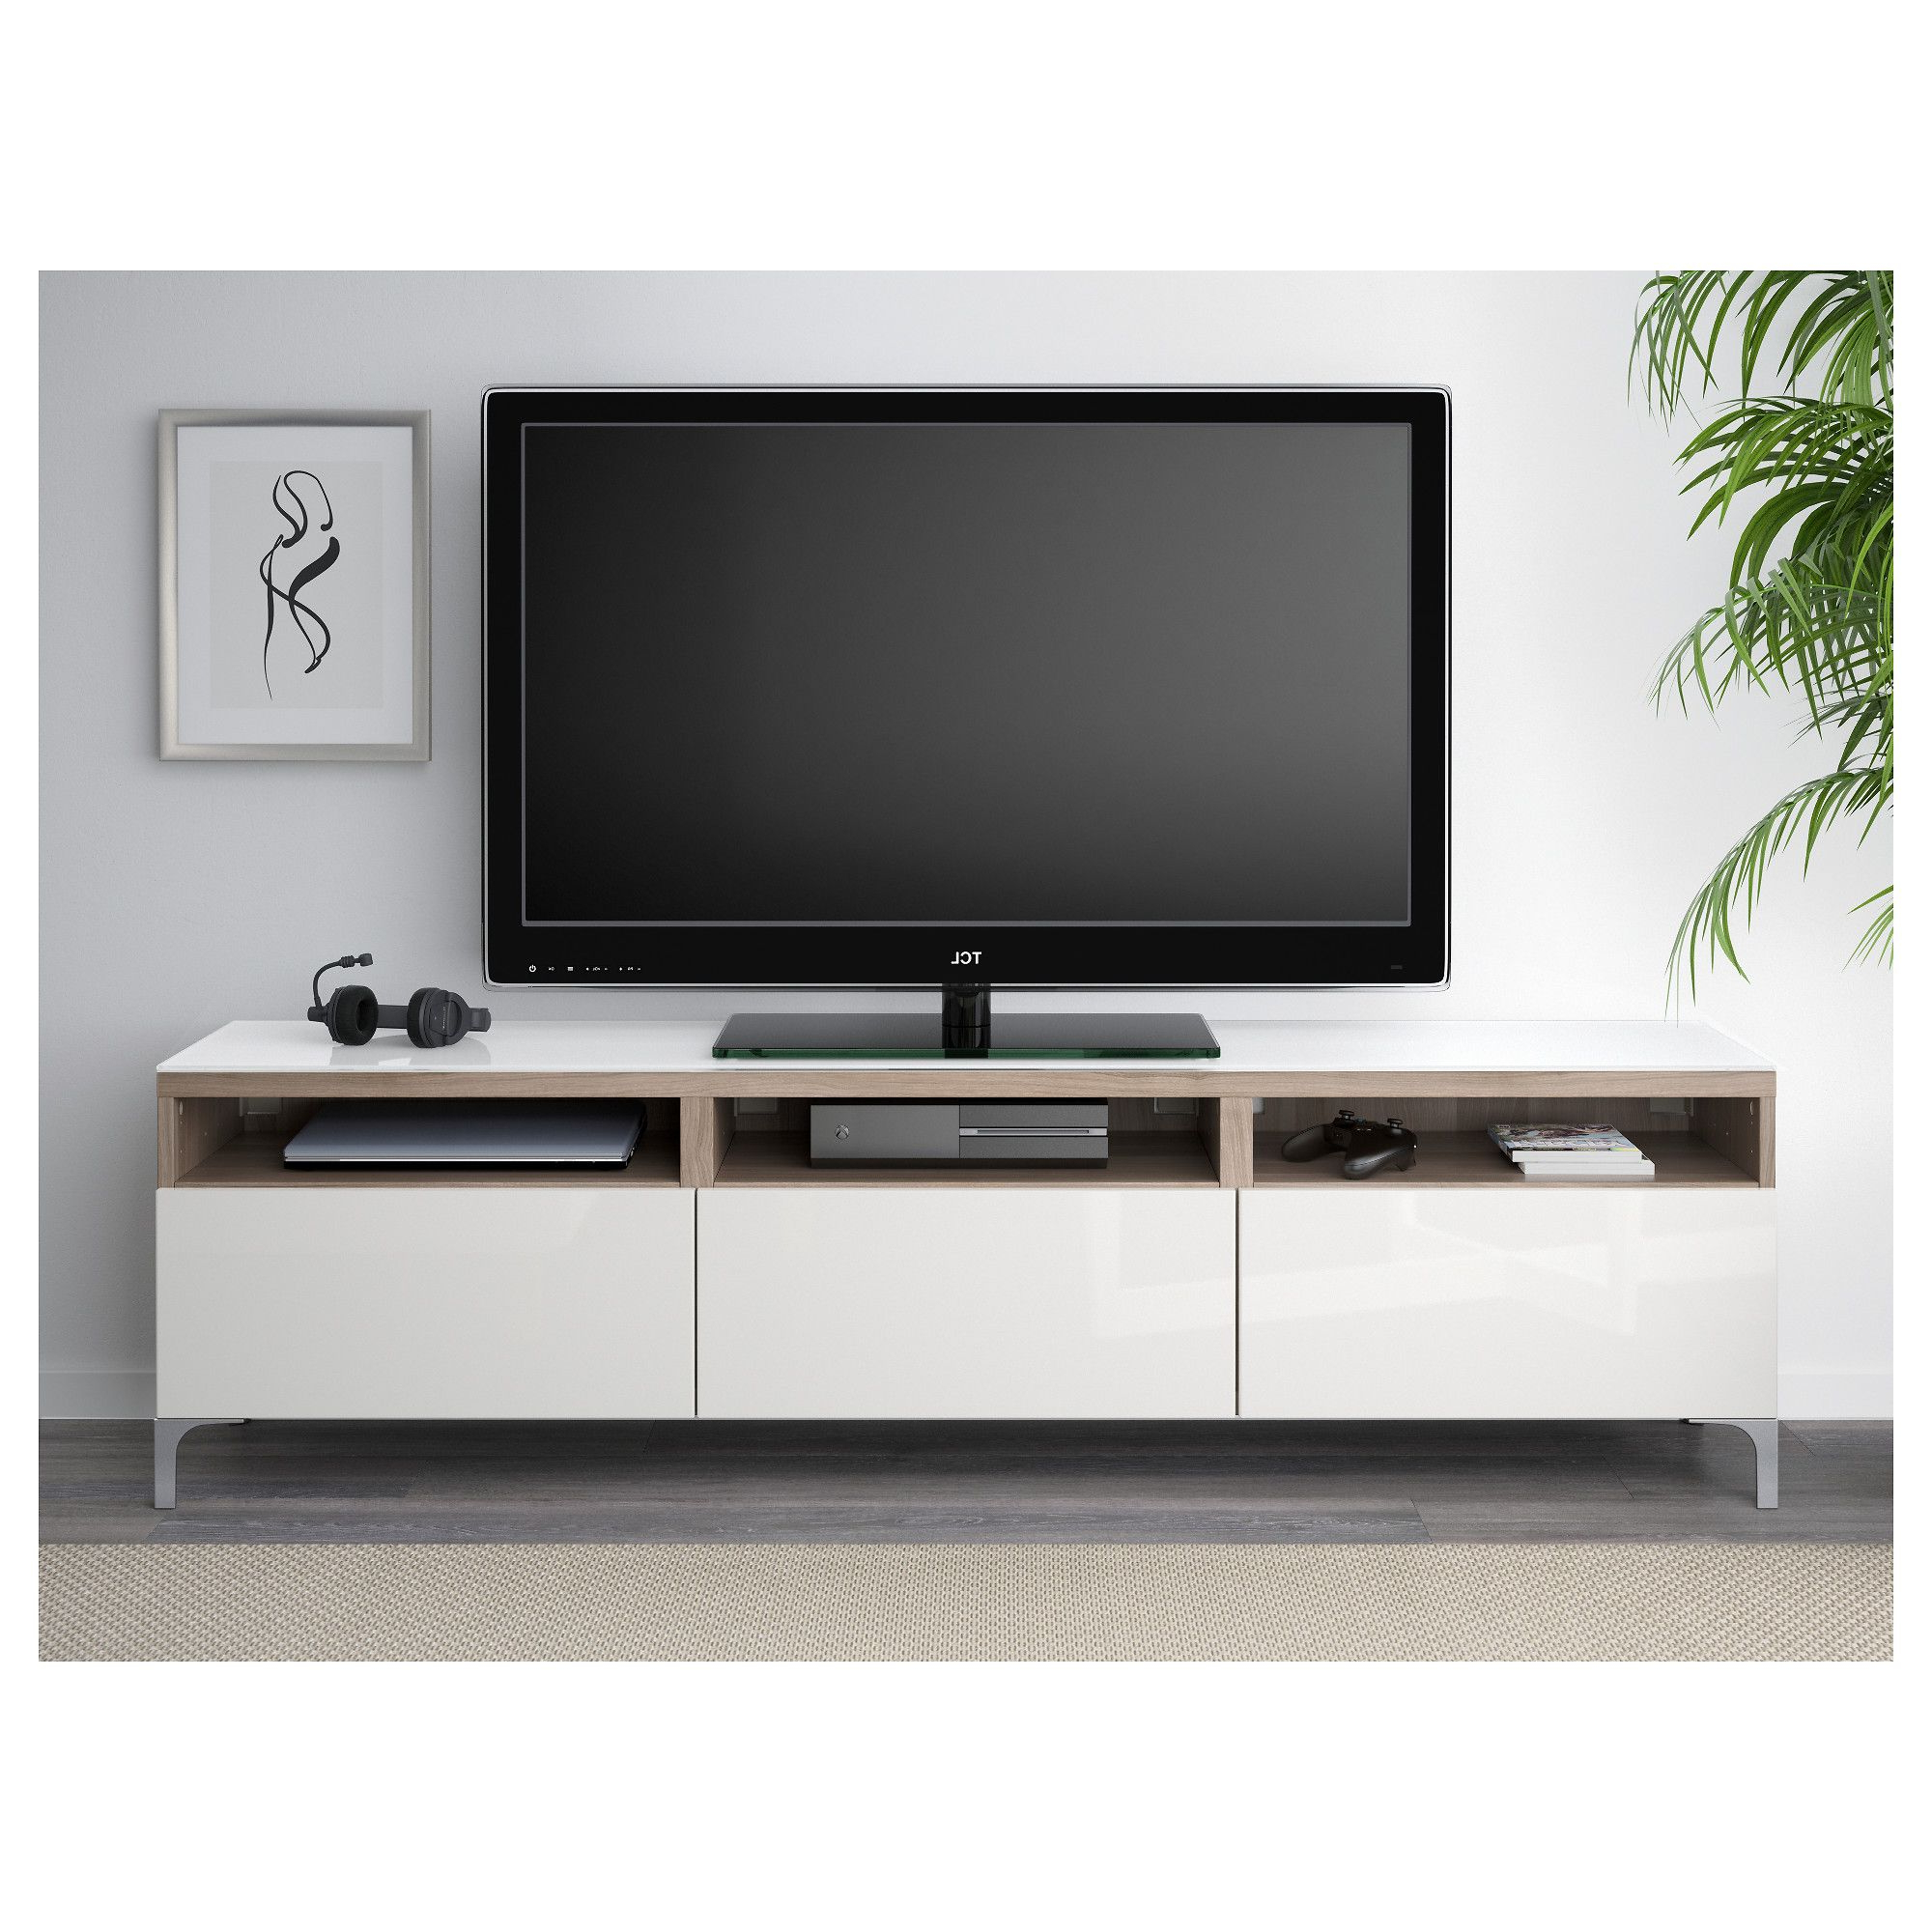 Newest Walnut And Black Gloss Tv Units Regarding Bestå Tv Unit With Drawers, Walnut Effect Light Gray, Selsviken High (Gallery 7 of 20)